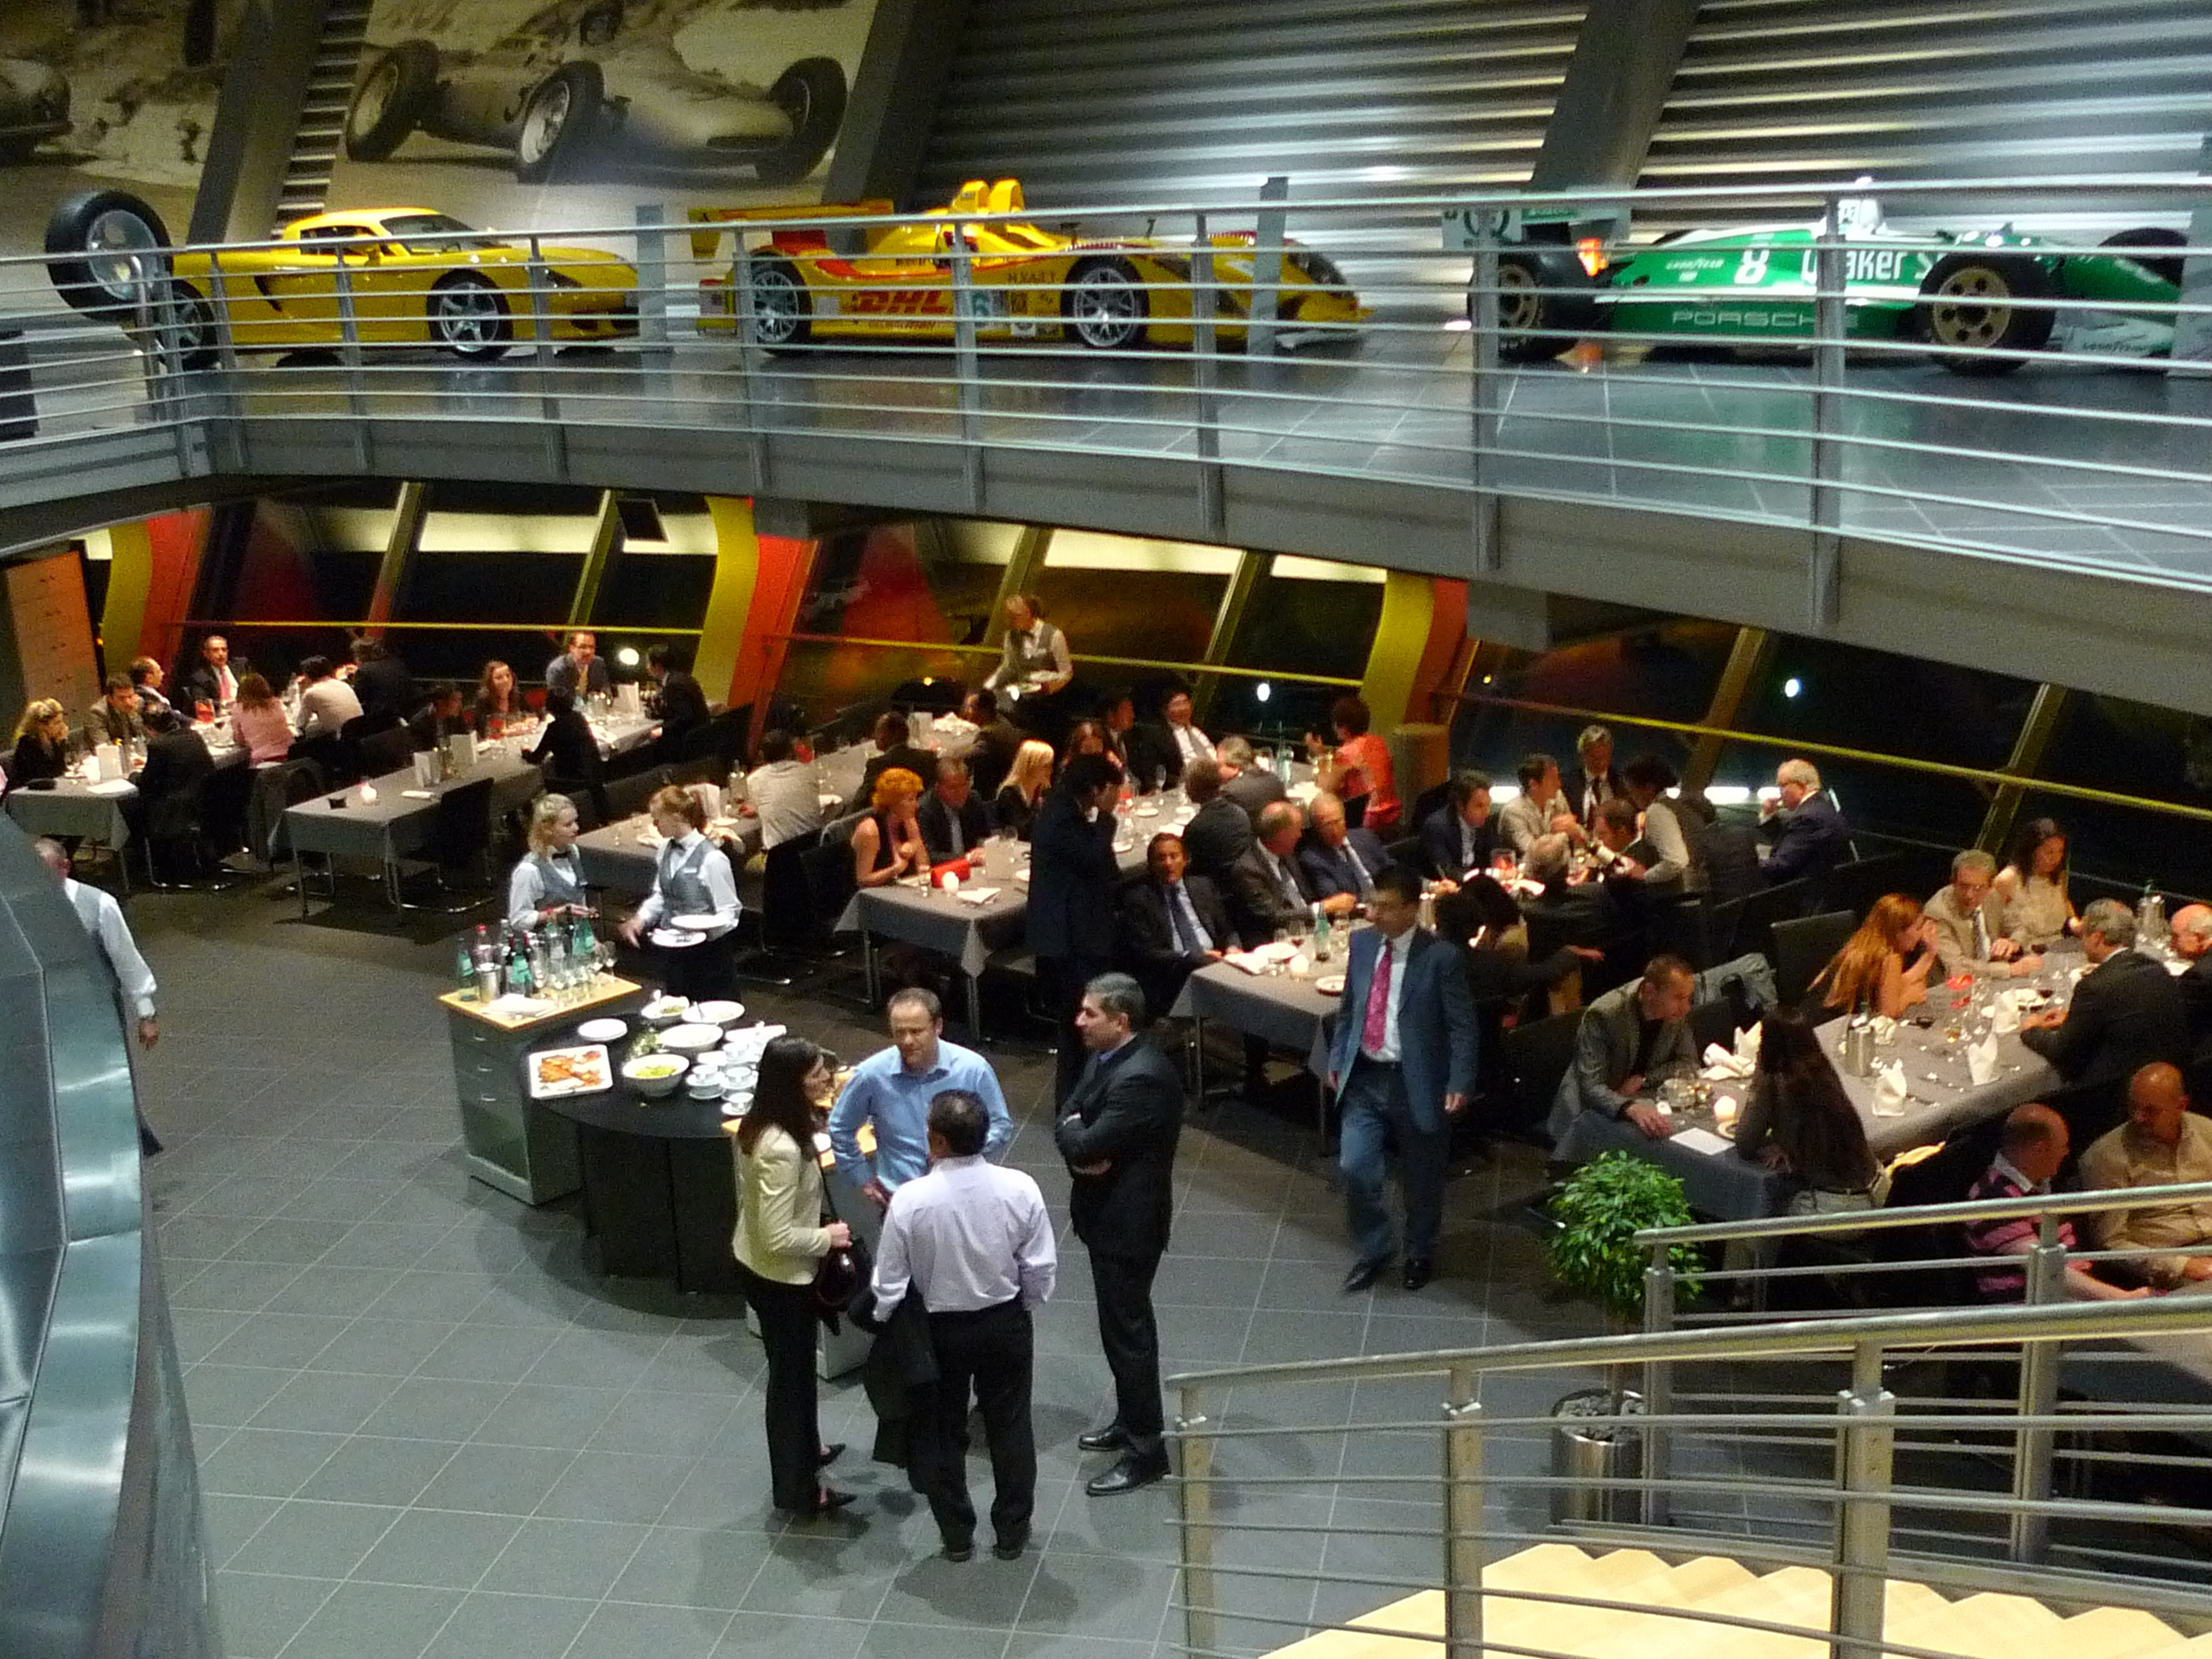 Event at Porsche Center, Leipzig, Germany